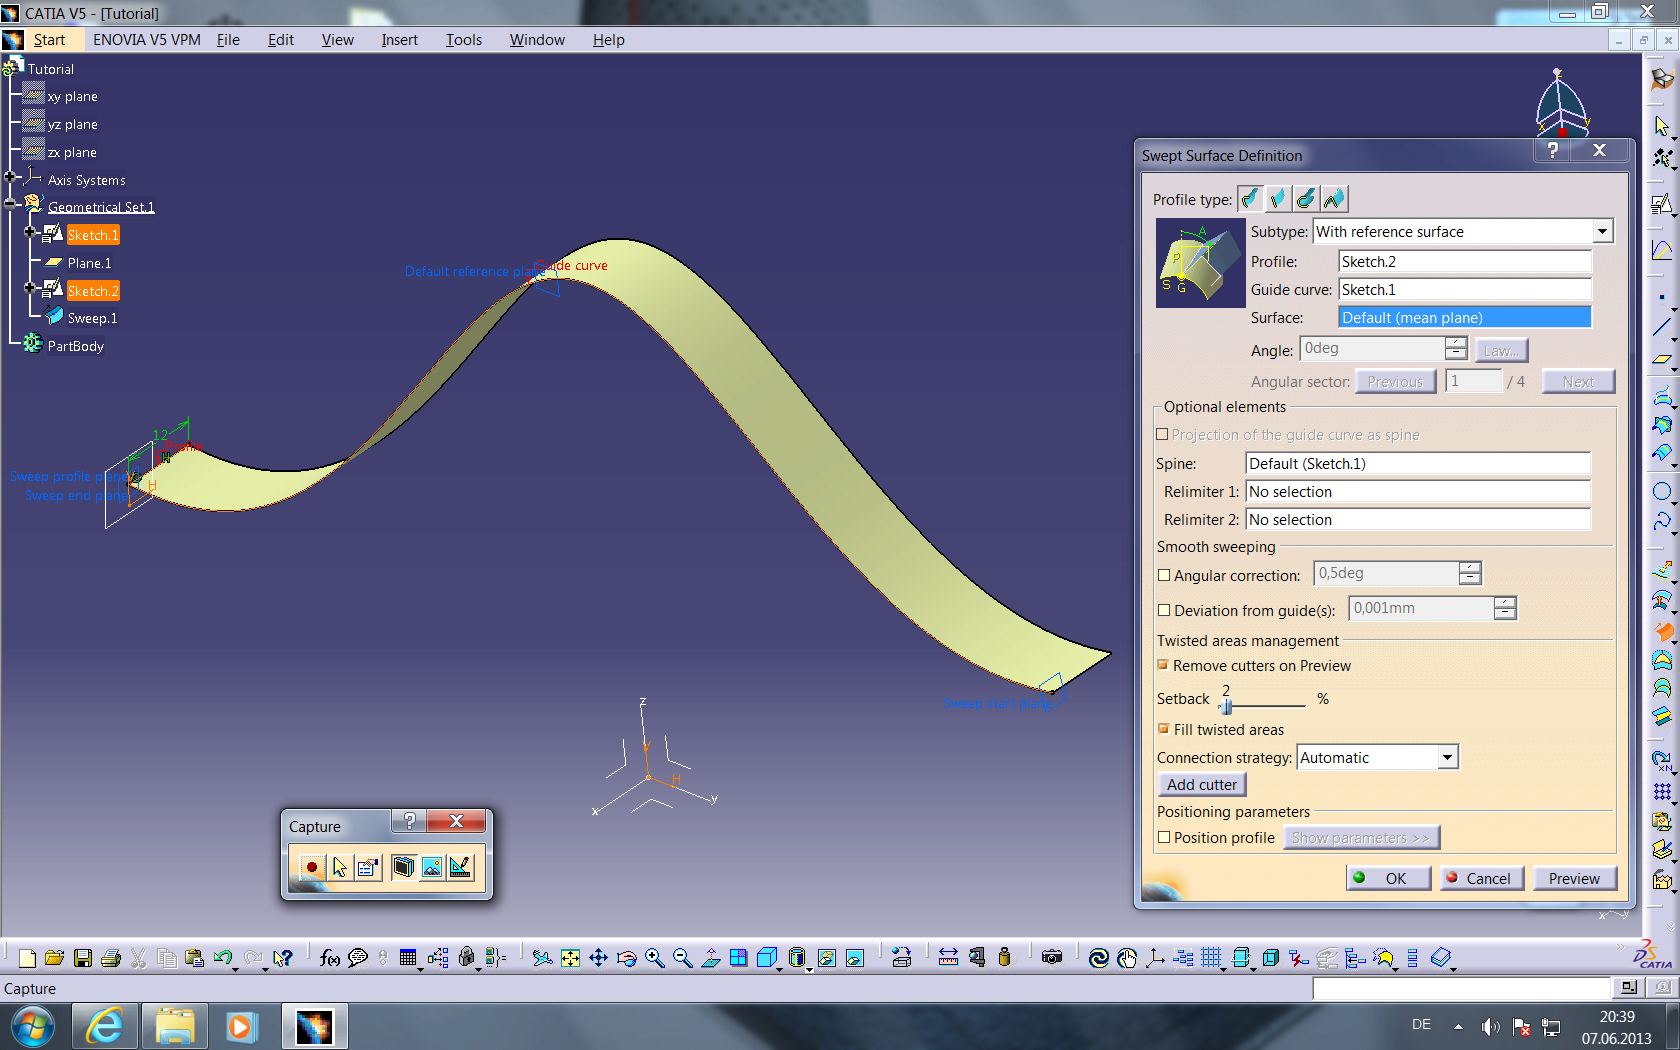 Tutorial: How to get a helix on a spline/curve/polyline in